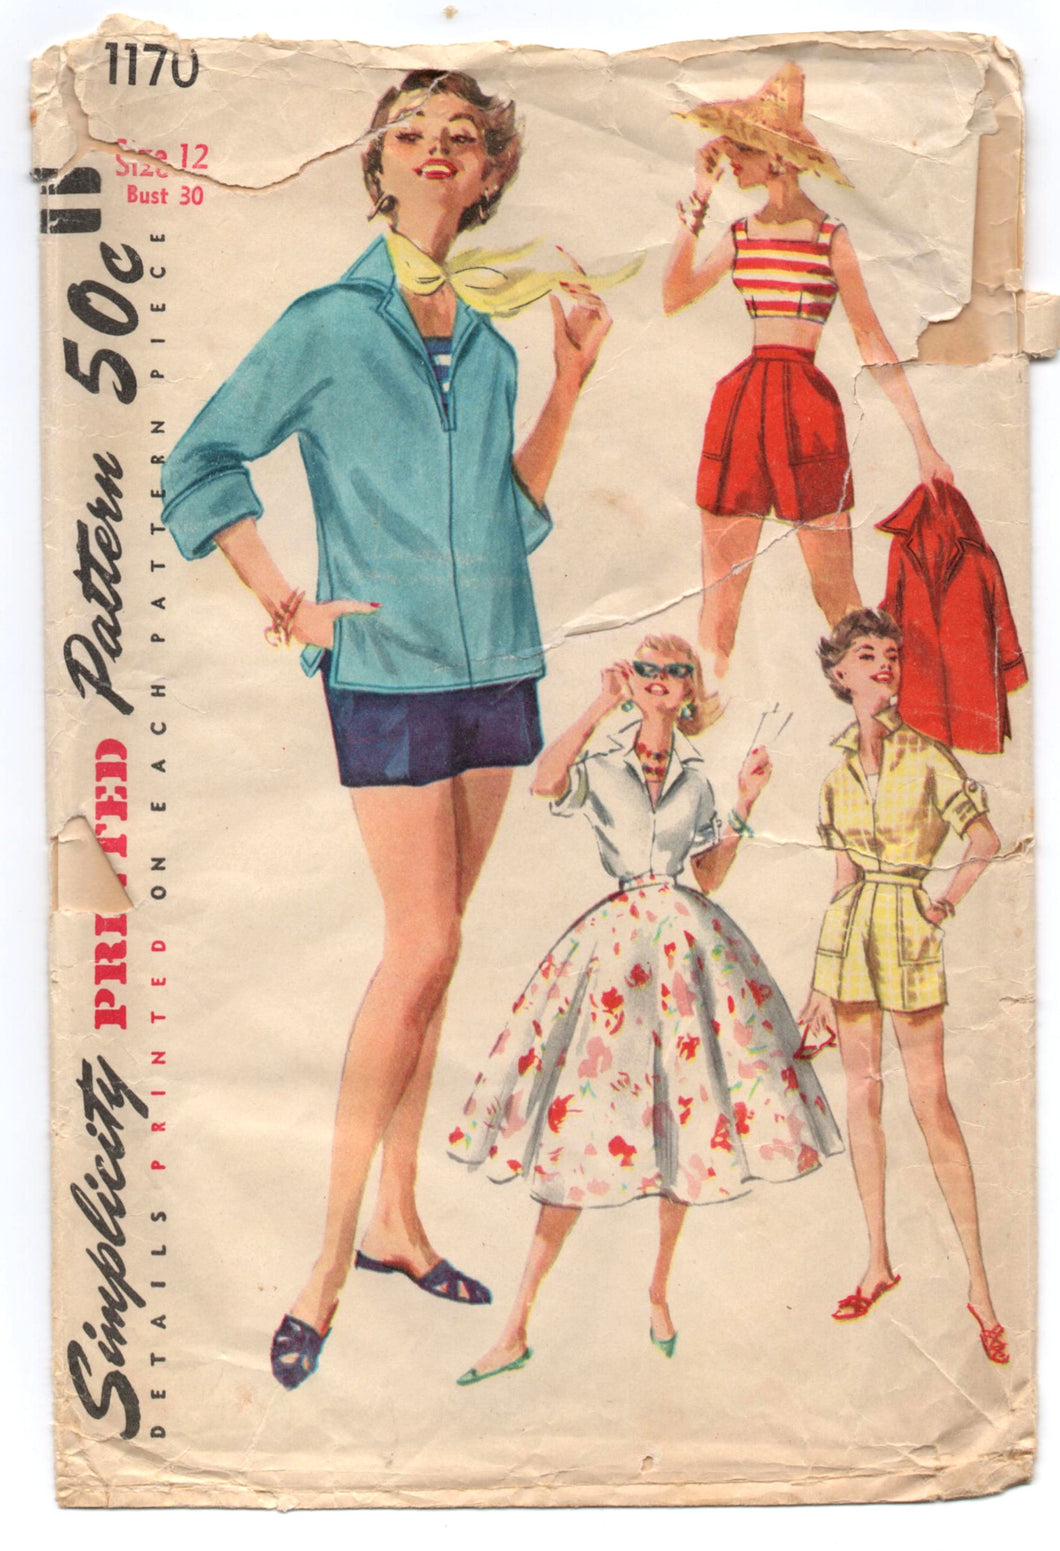 1950's Simplicity Full Skirt, Crop Top, Shorts and Blouse with Kimono sleeves Pattern - Bust 30